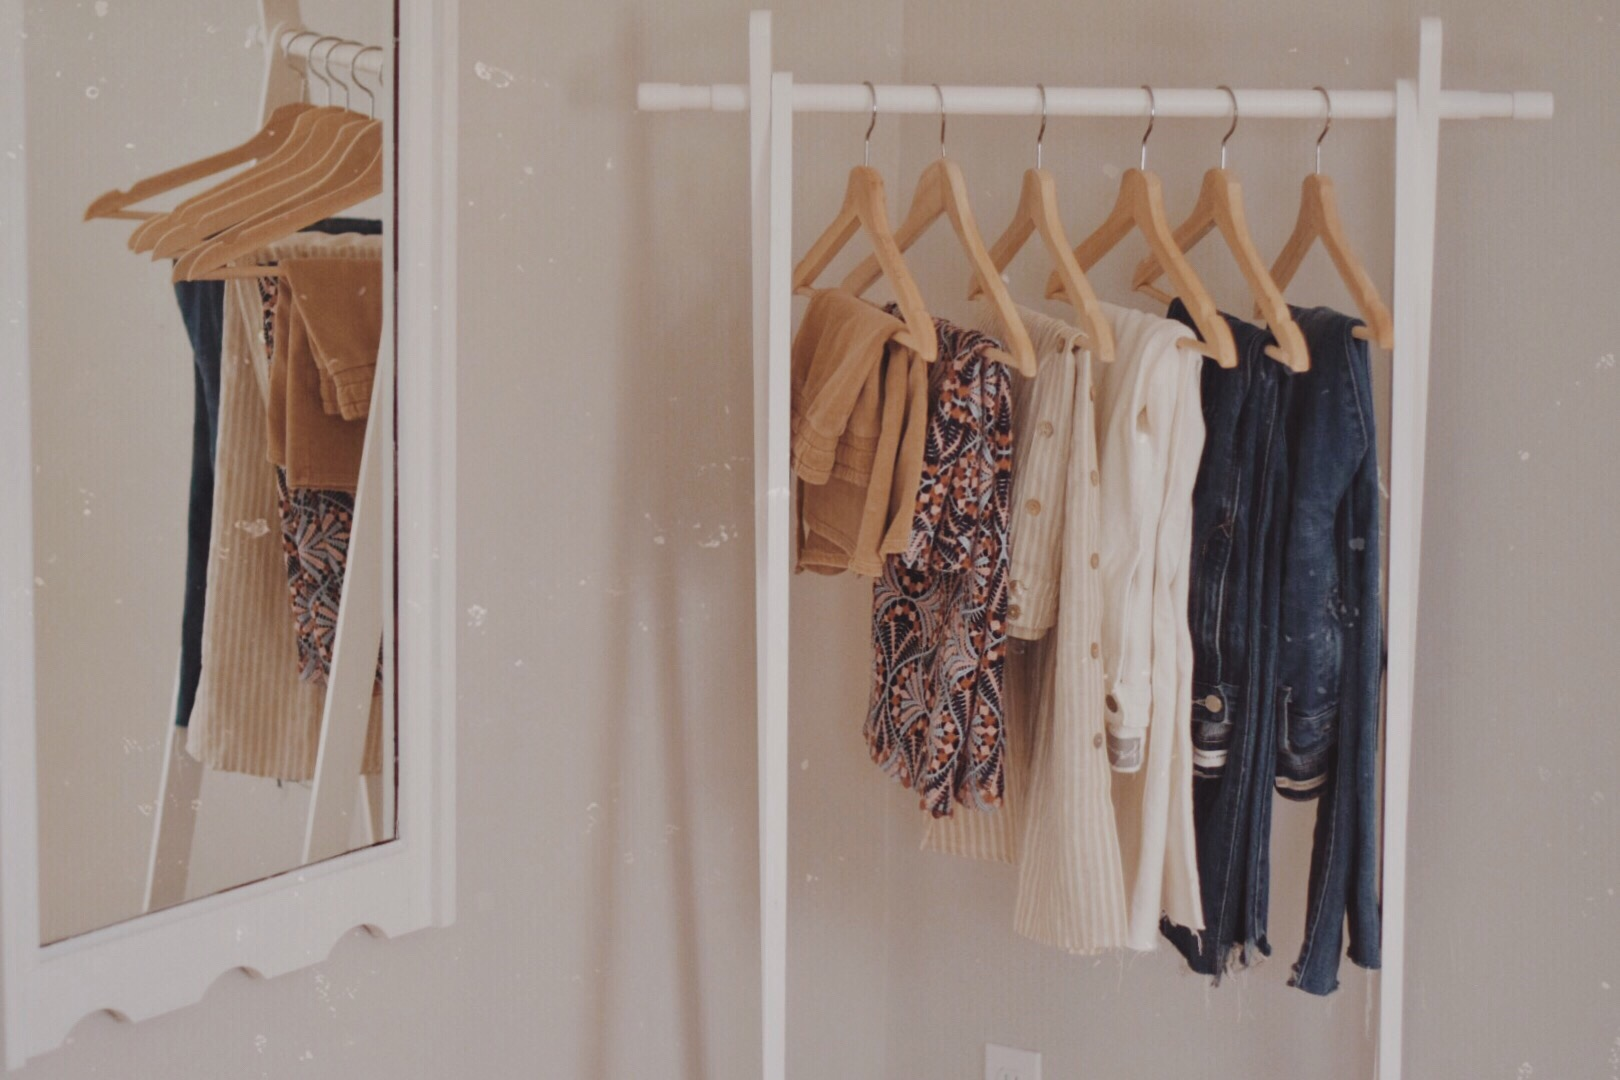 sharing my summer capsule wardrobe with pieces from ethical and sustainable fashion brands